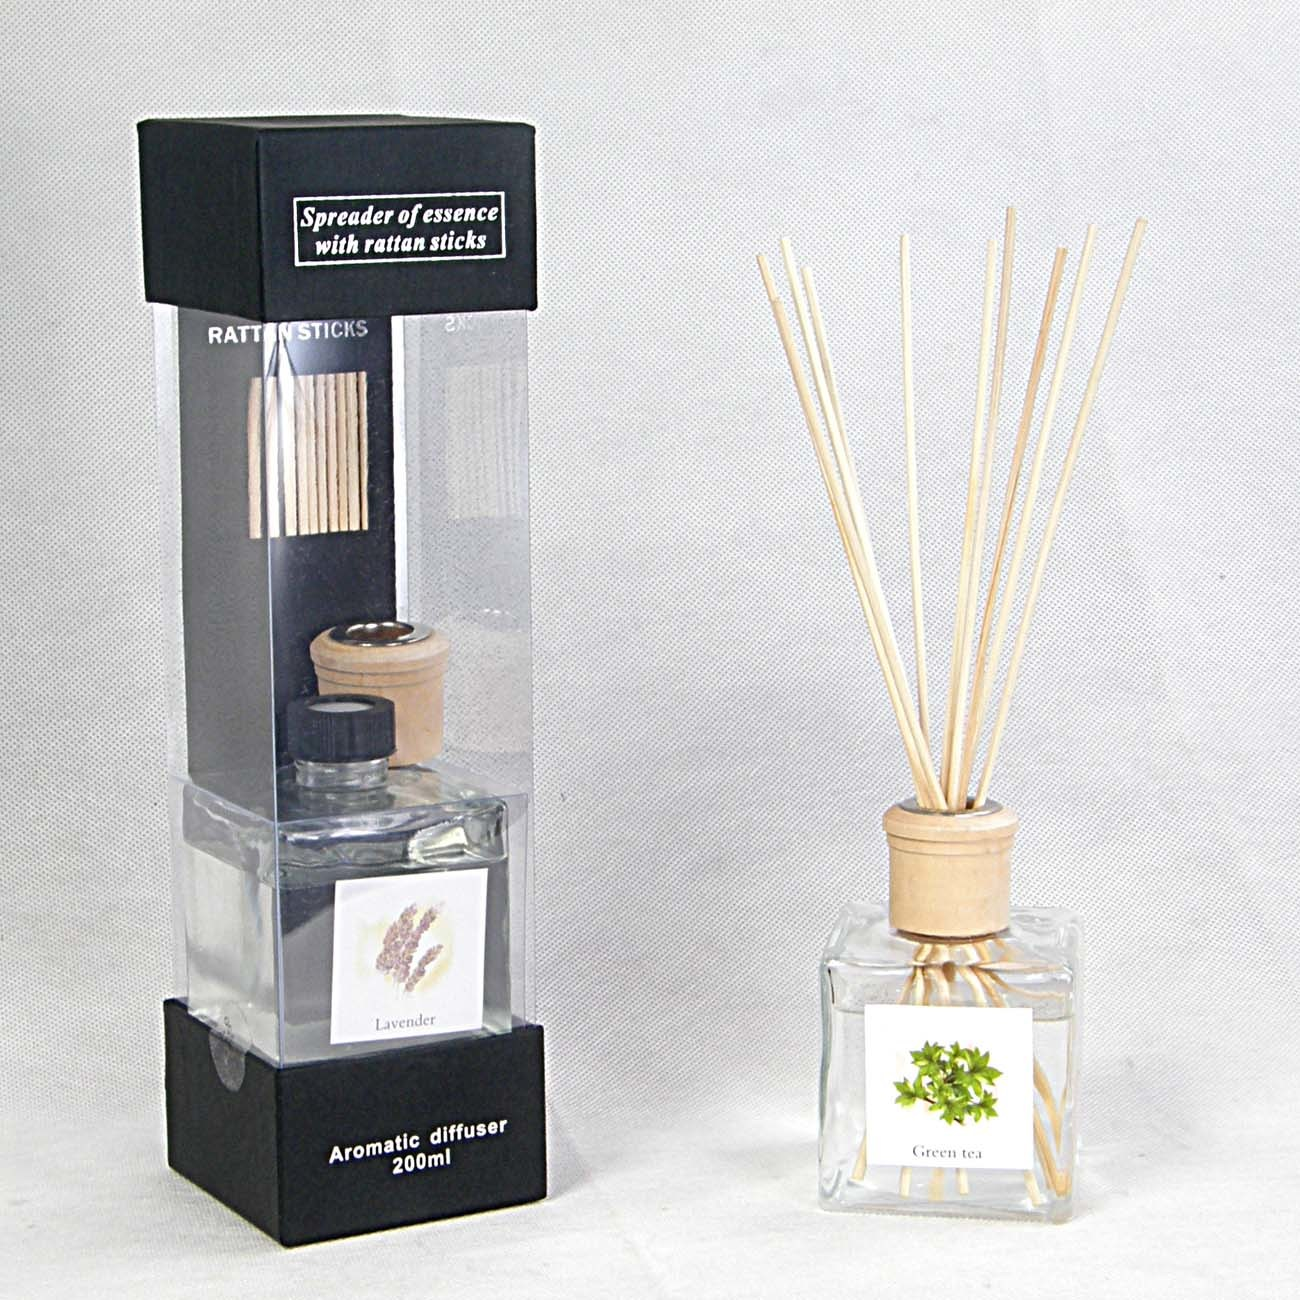 #8AA229 China Aroma Reed Diffuser Set 45 Scents Essential Oil  Most Effective 1175 Aromatherapy Diffuser Set pictures with 1300x1300 px on helpvideos.info - Air Conditioners, Air Coolers and more